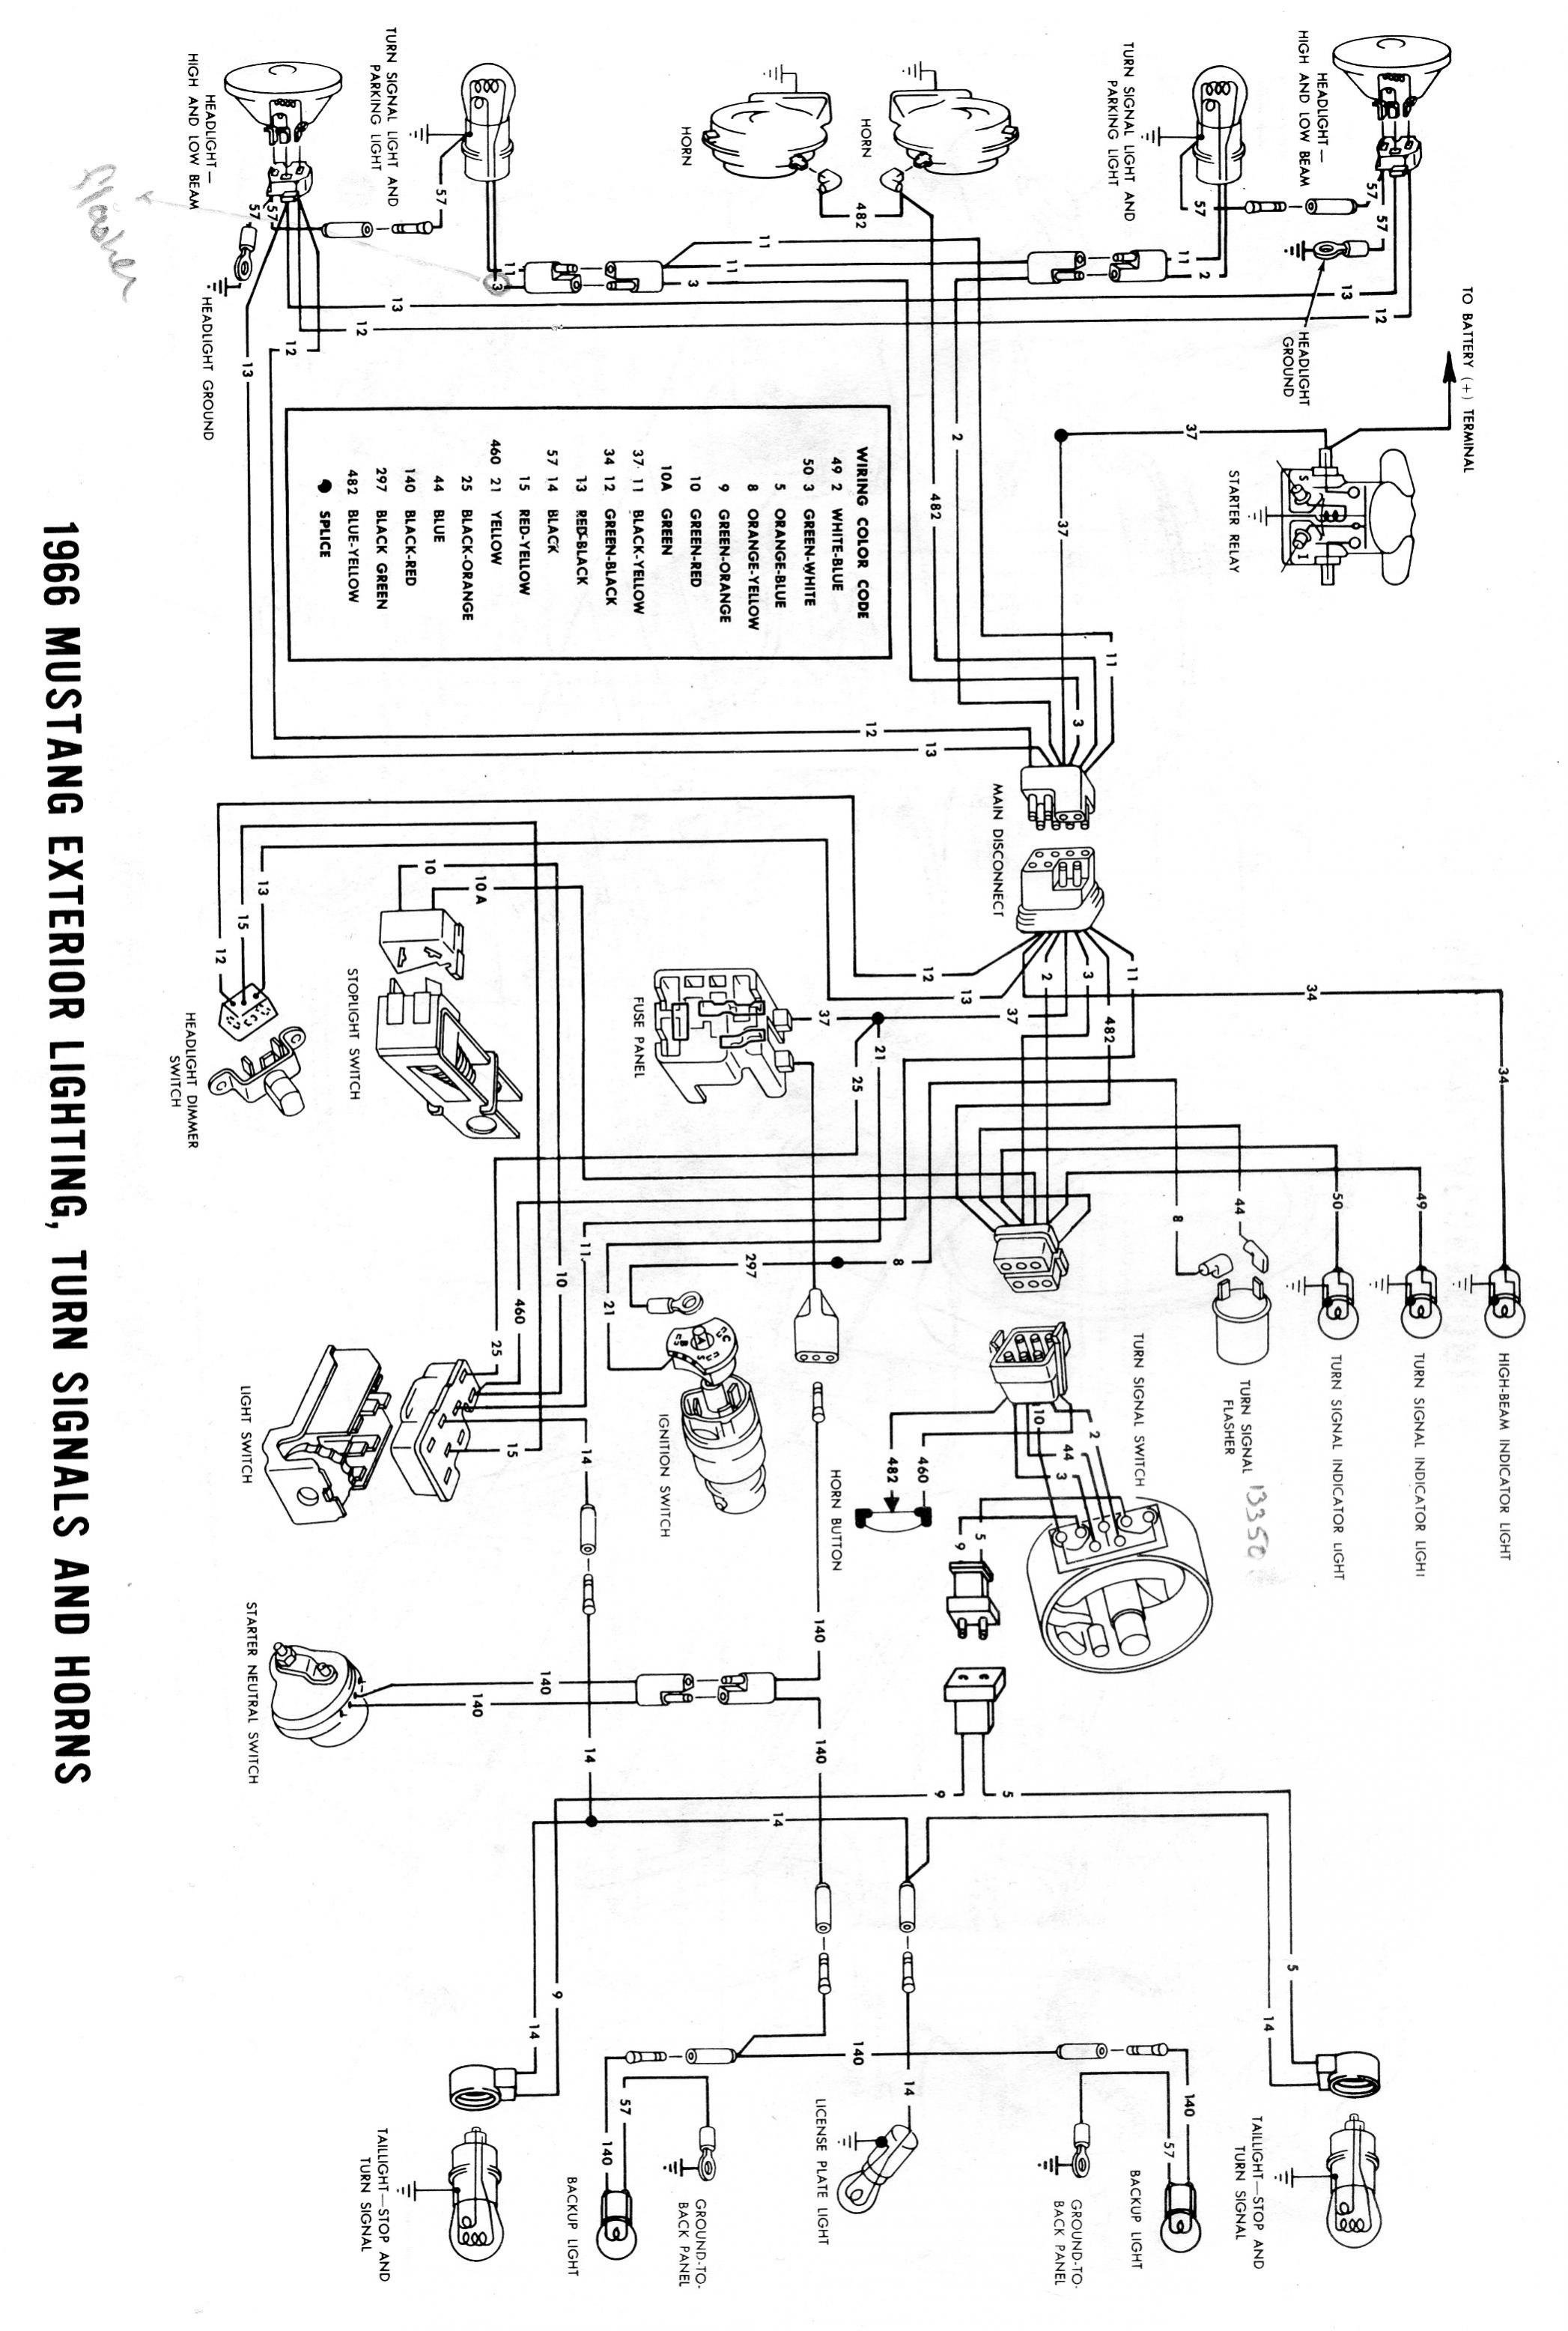 1967 camaro steering column wiring diagram